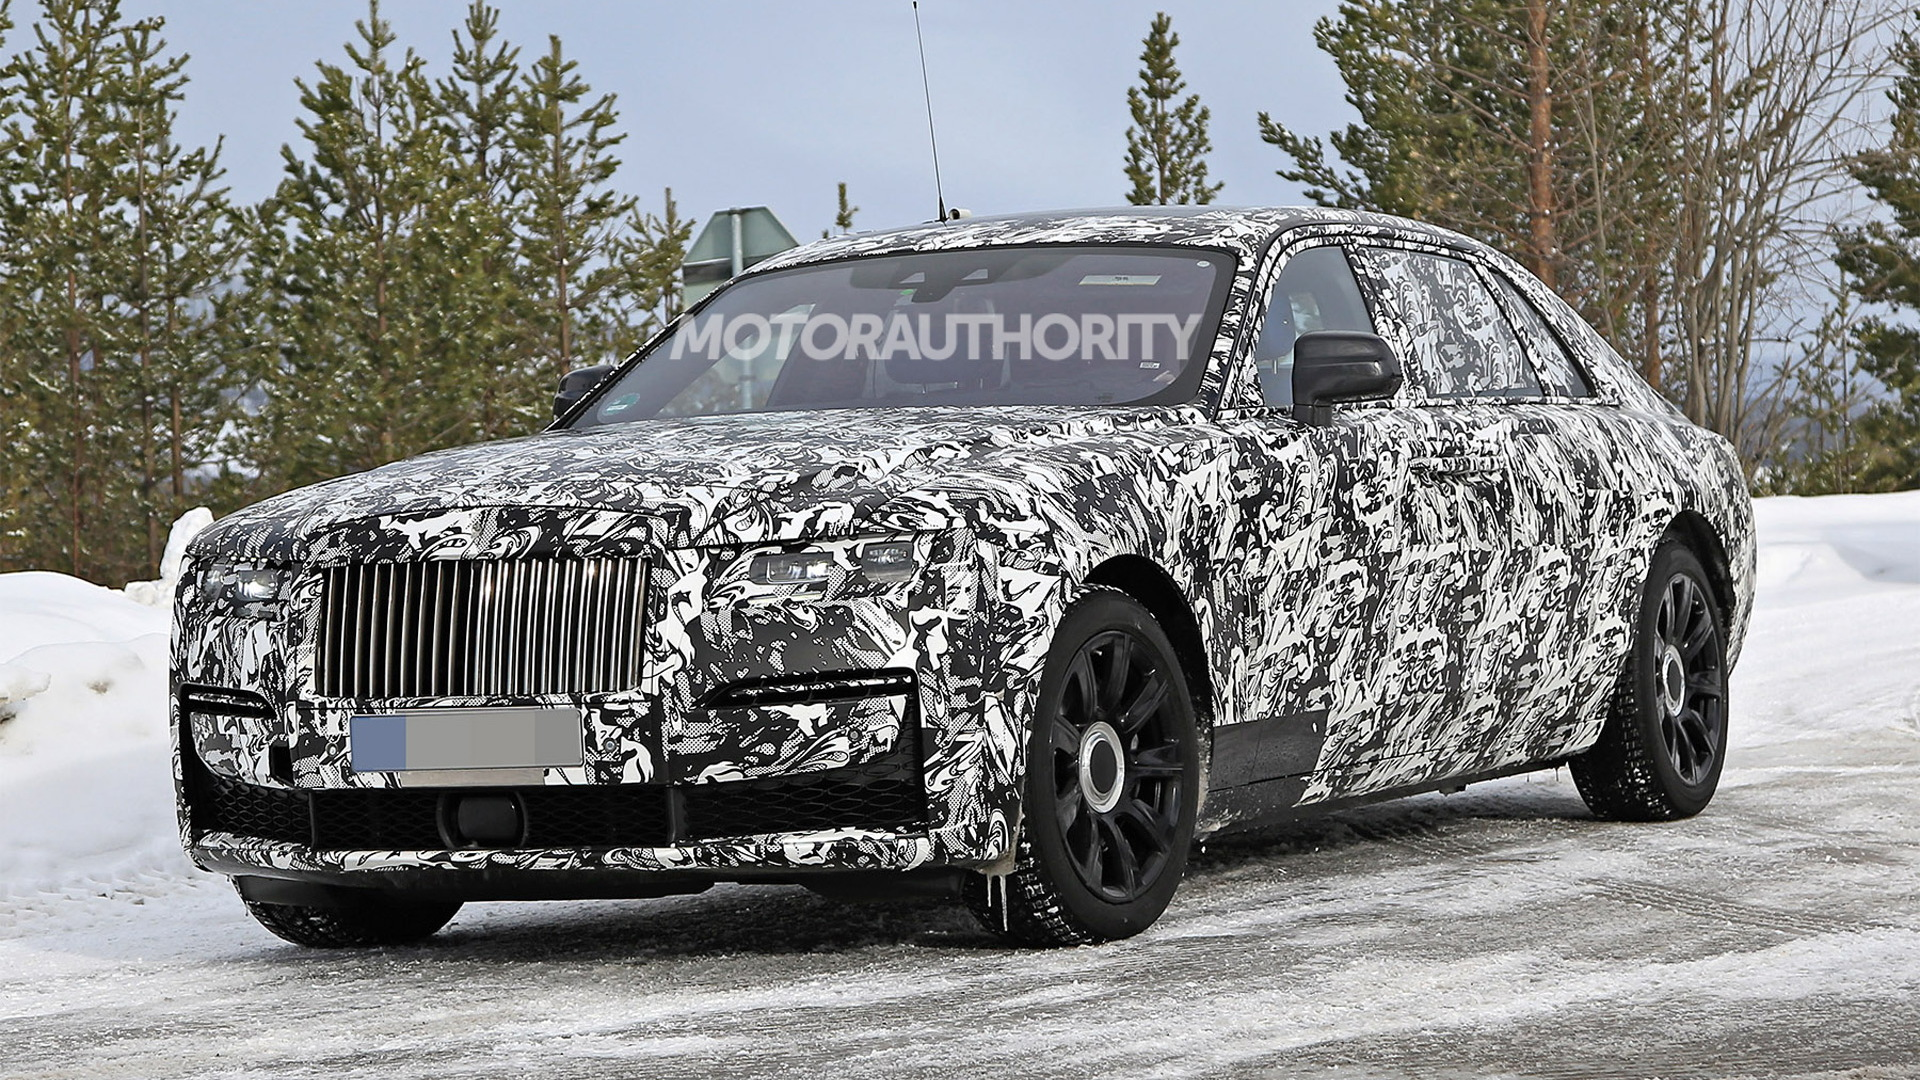 2021 Rolls-Royce Ghost Extended Wheelbase spy shots - Photo credit: S. Baldauf/SB-Medien